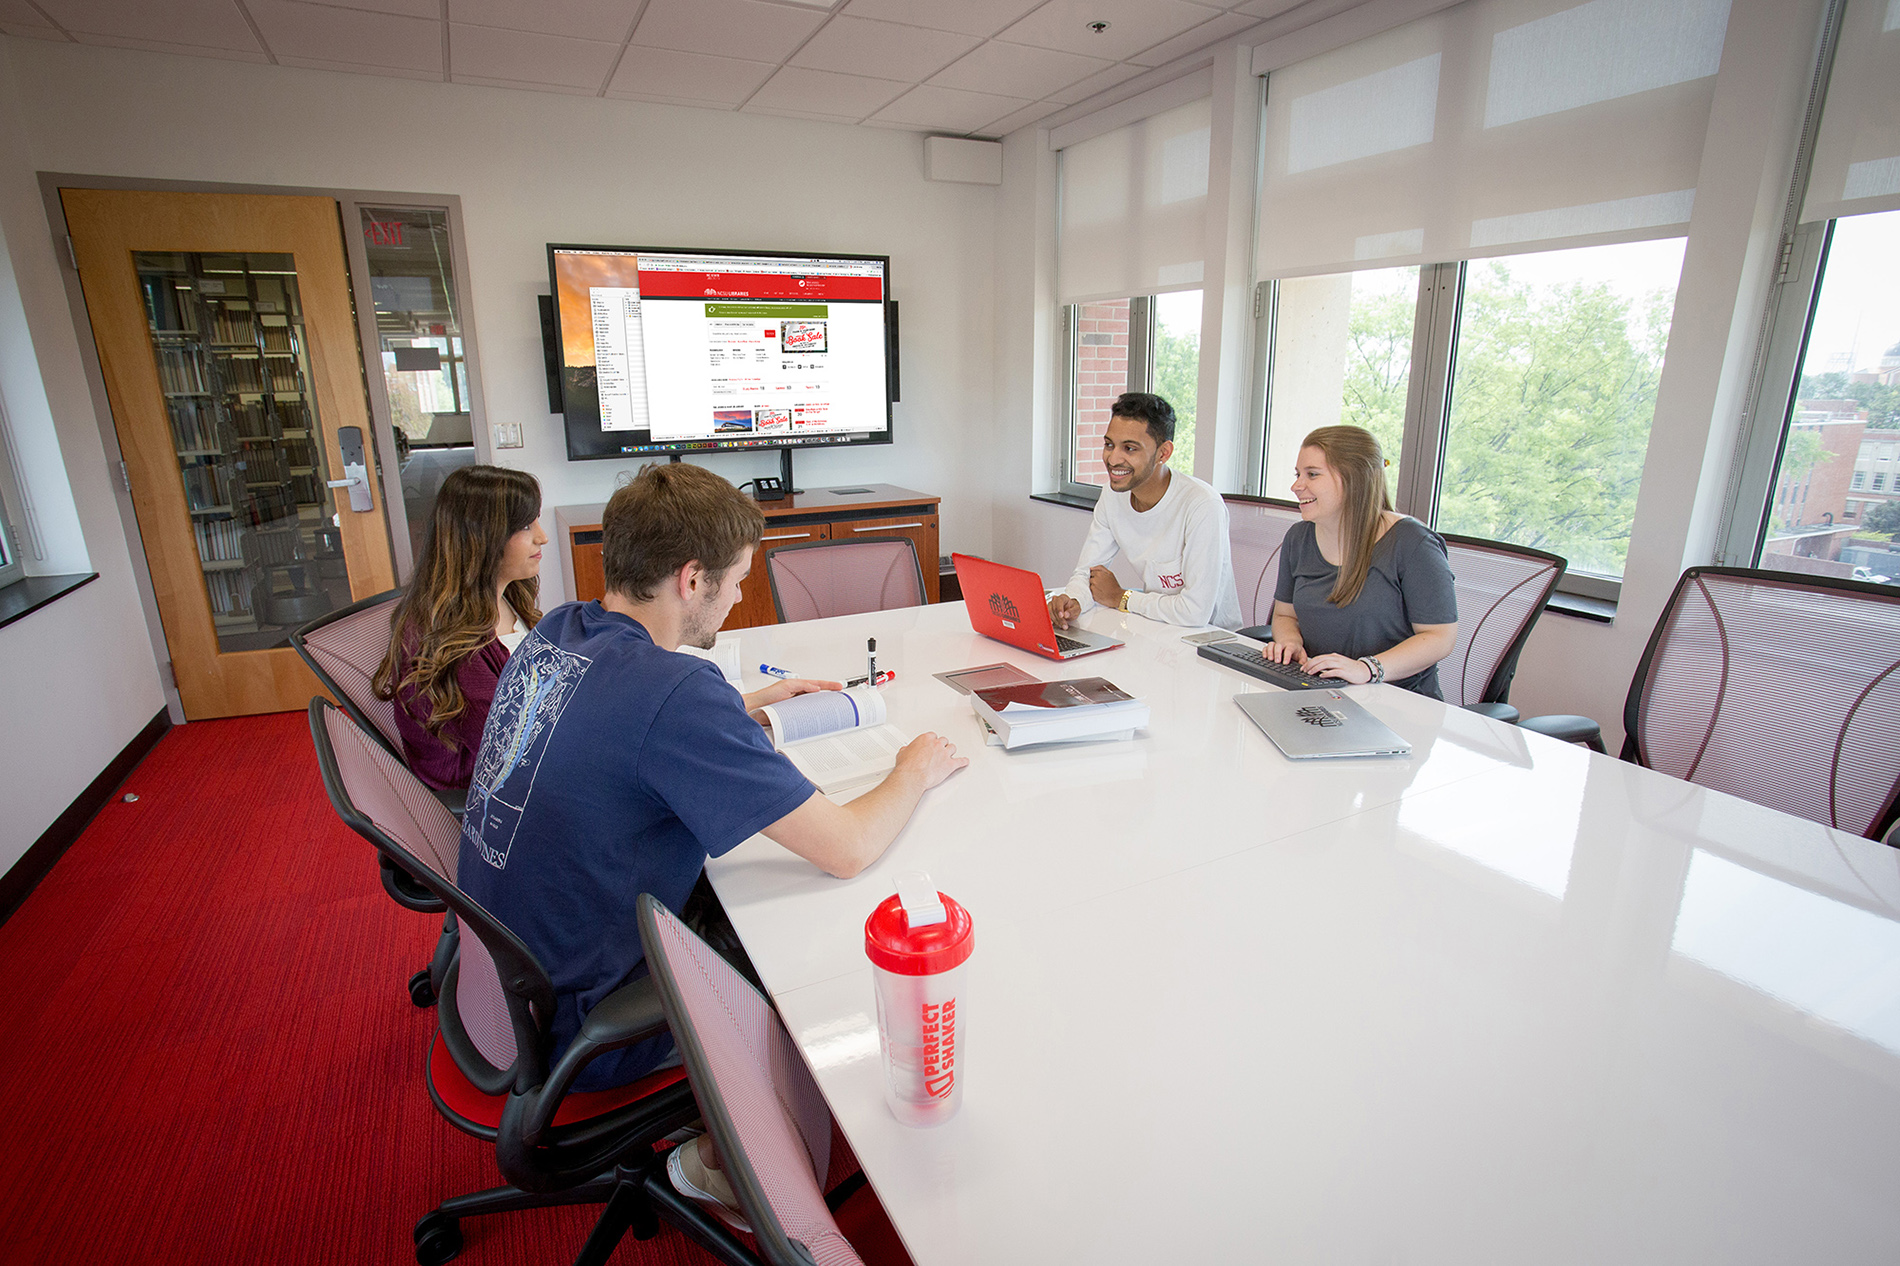 Students sitting at a long table in a graduate study room with a wall mounted screen at DH Hill